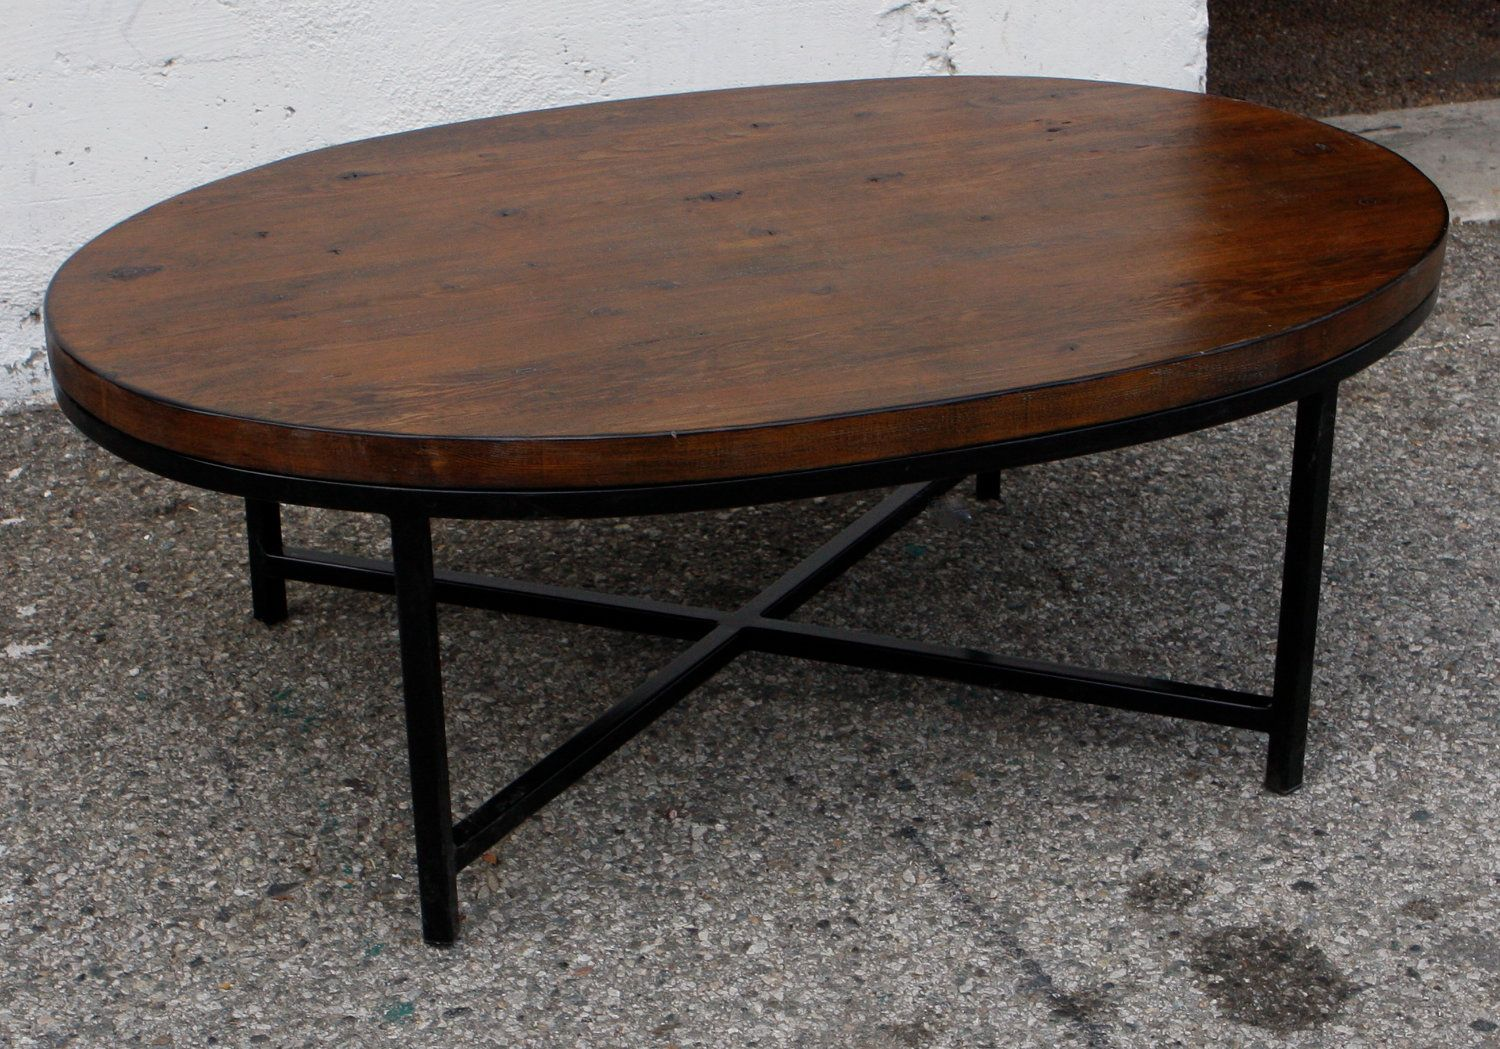 Wilshire Custom Oval Coffee Table Los AngelesReclaimed Wood Top - Reclaimed wood coffee table los angeles